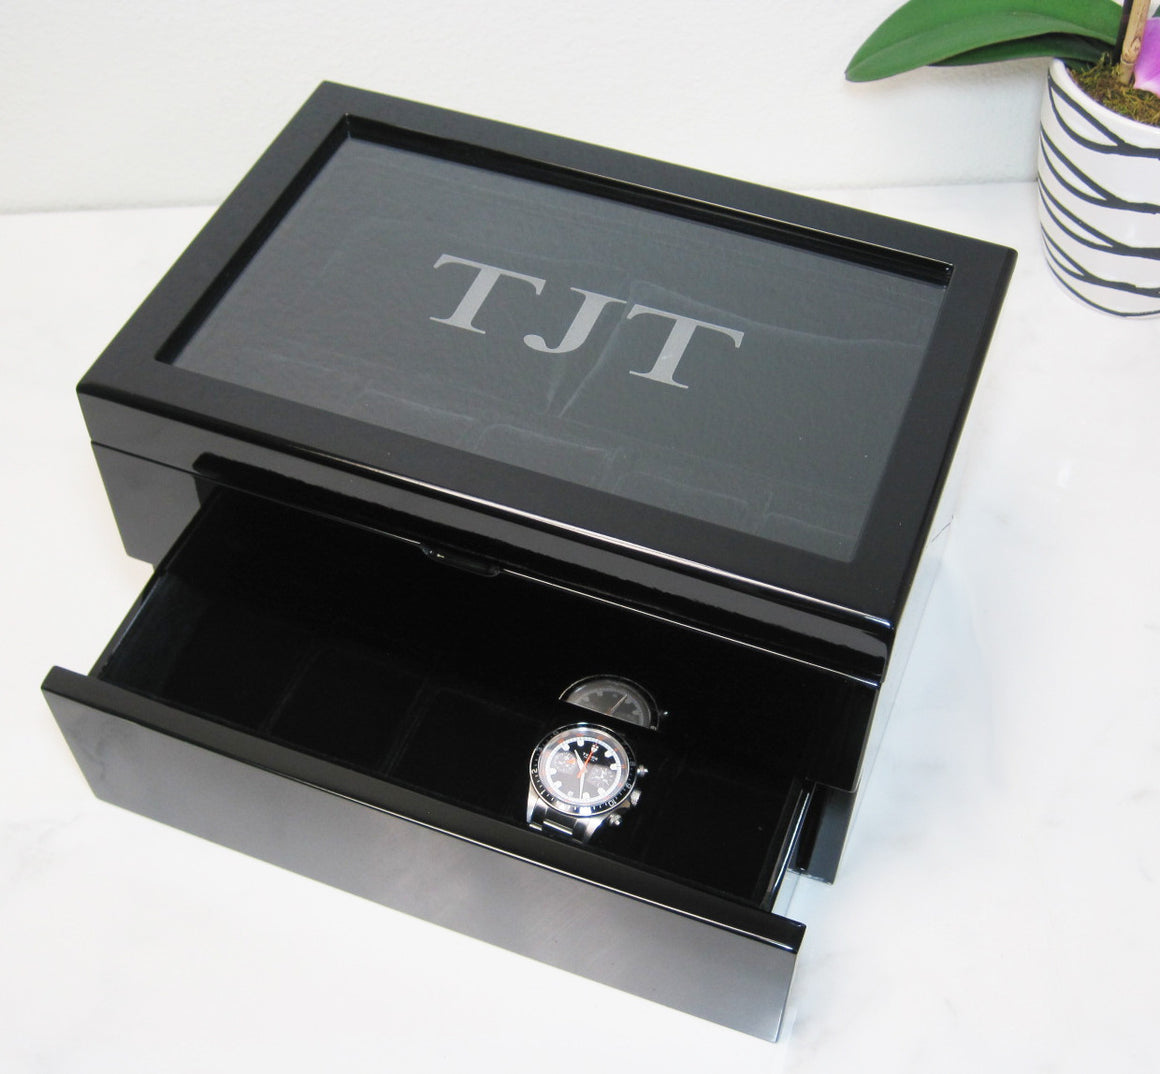 (17) Piano Black Wood Watch Box with Glass Top - Watch Box Co. - 2